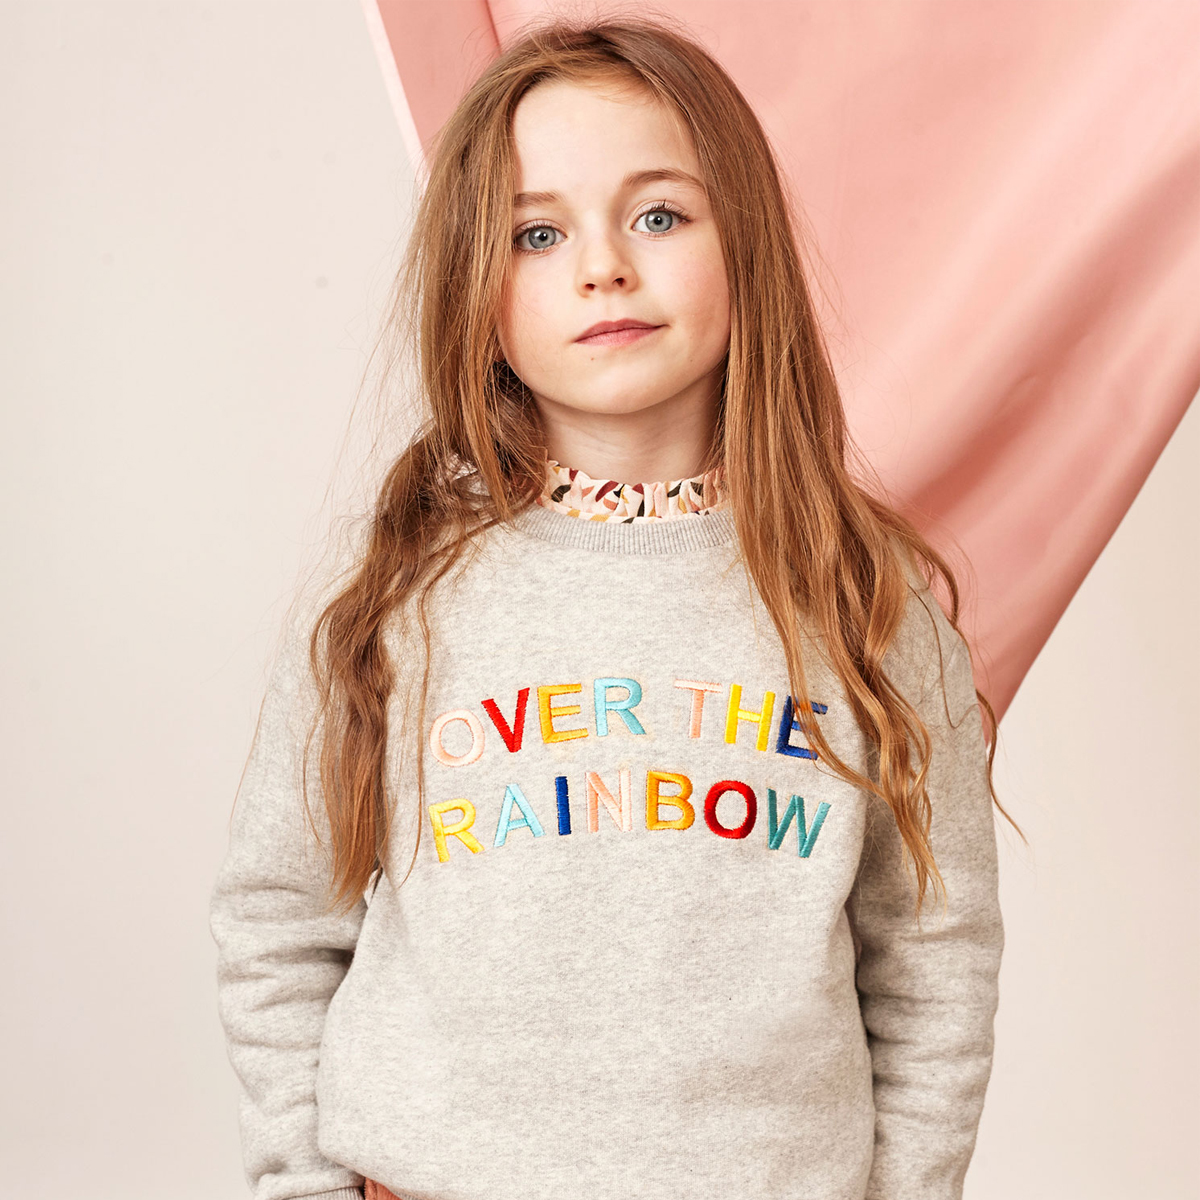 Blune Grey Over The Rainbow Sweater on girl